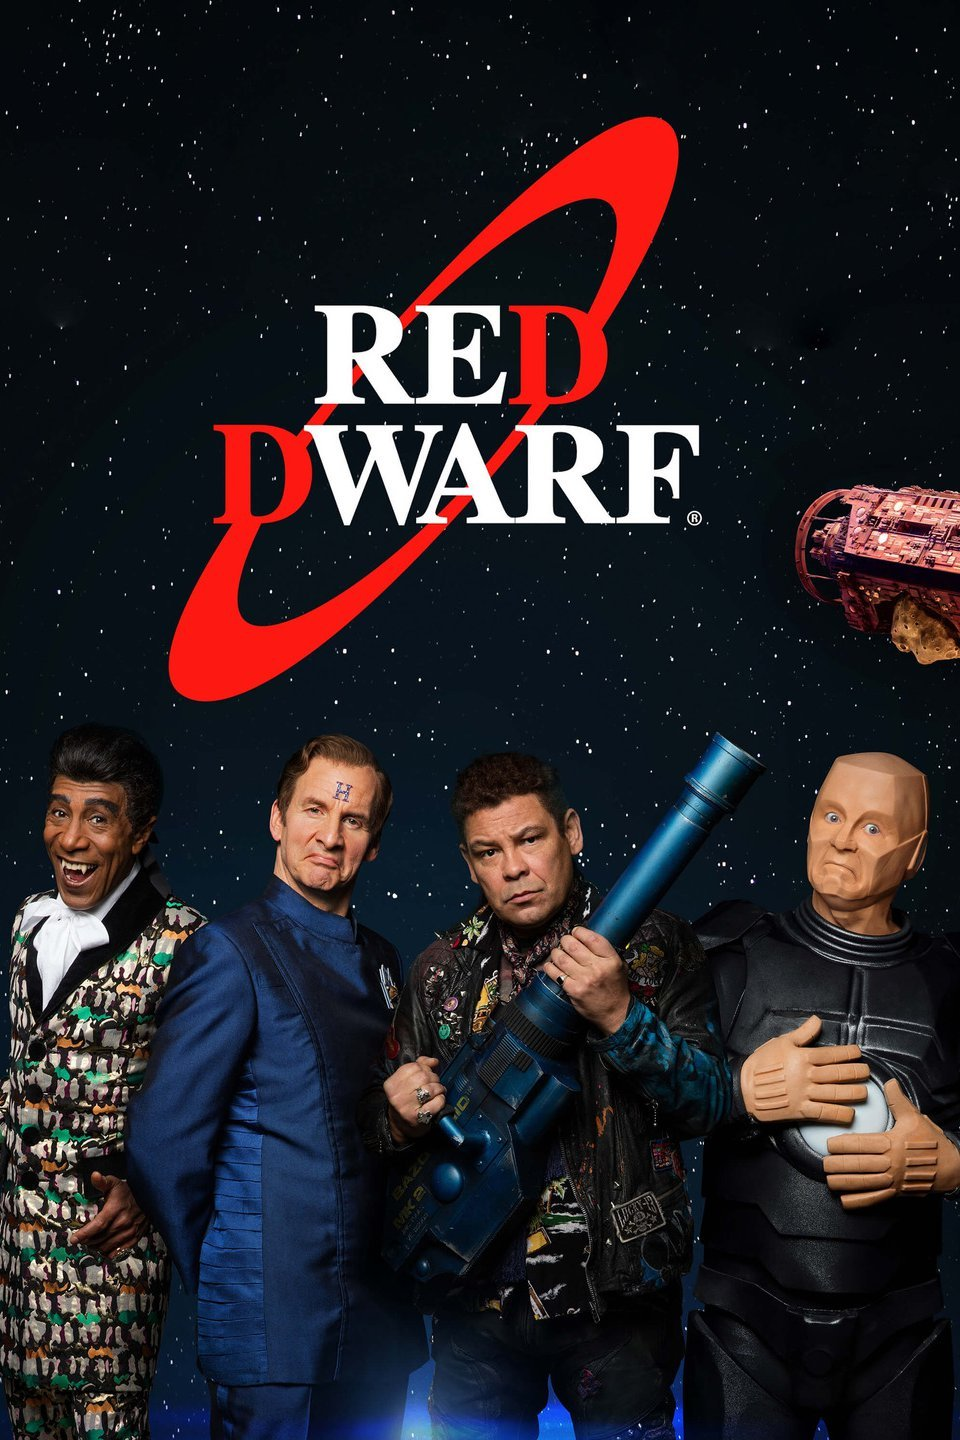 BBC, Comedy, Sci-Fi /'Vindaloovian Heroes/' T-Shirt Inspired by Red Dwarf